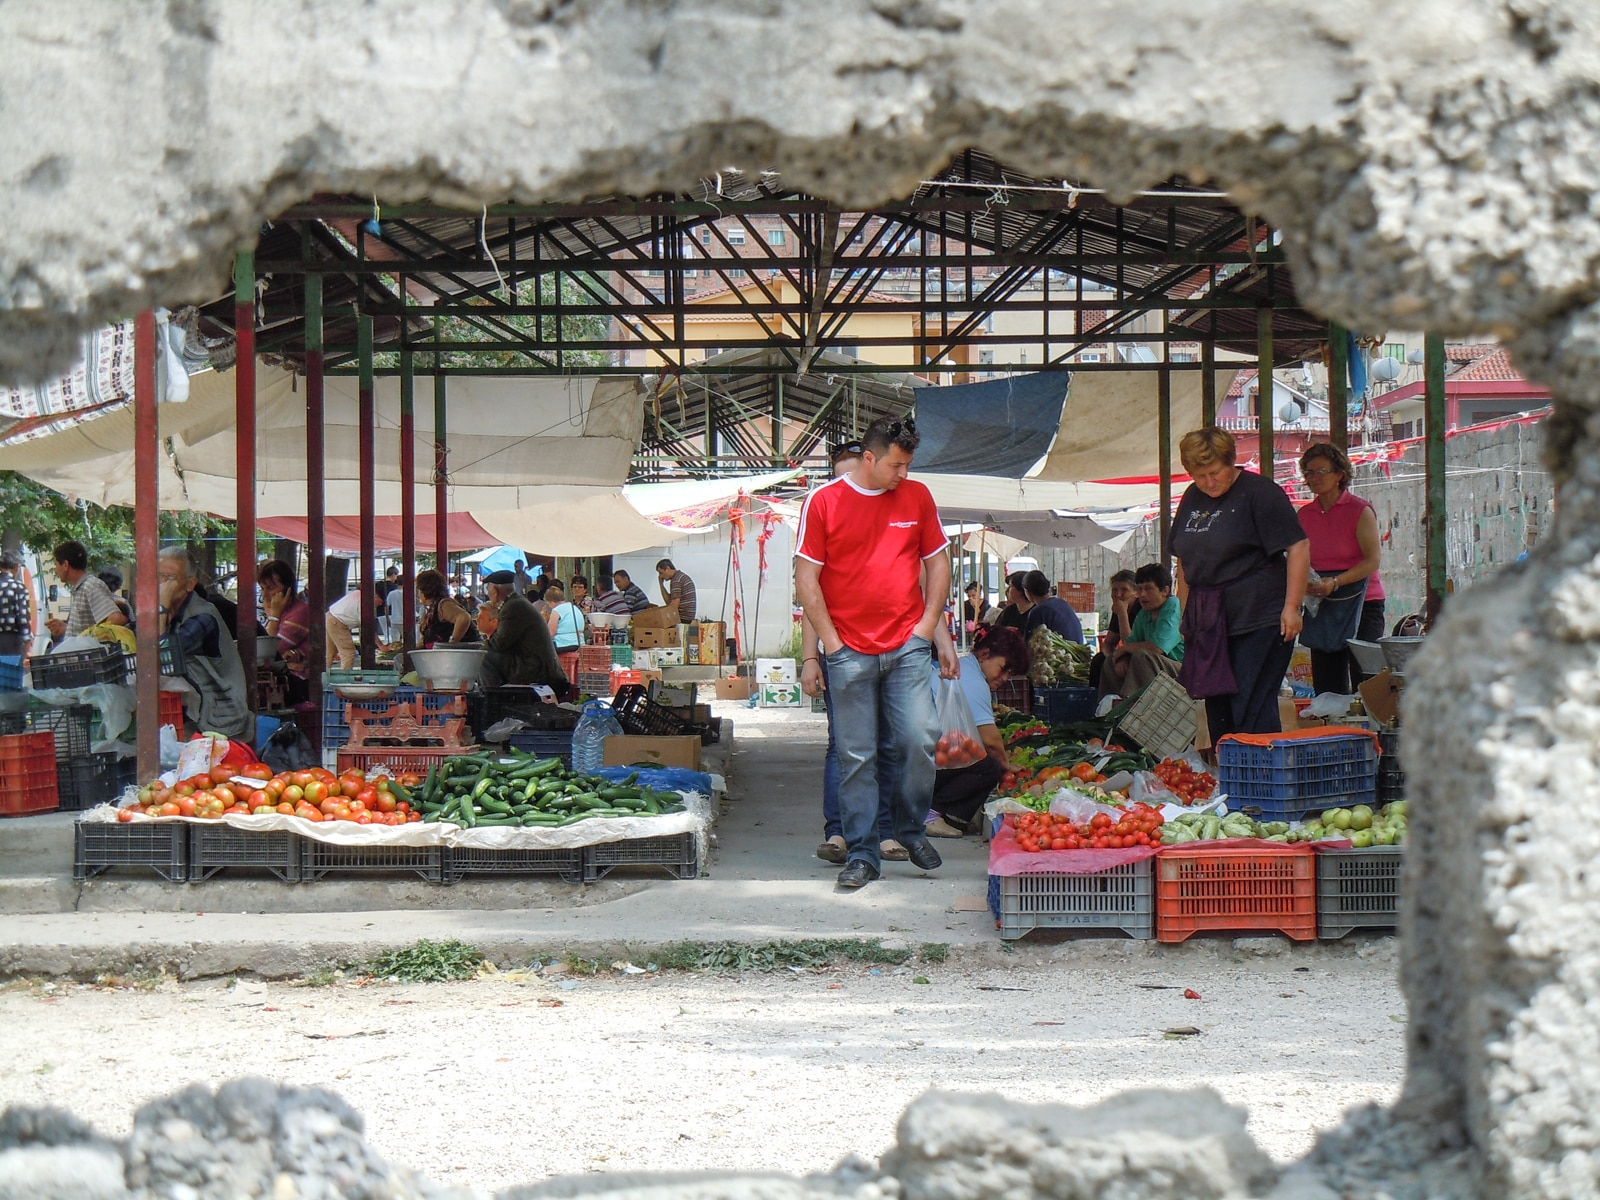 Fresh tomatoes, cucumbers, plums and cherries: a farmers' market in Lushnja in central Albania